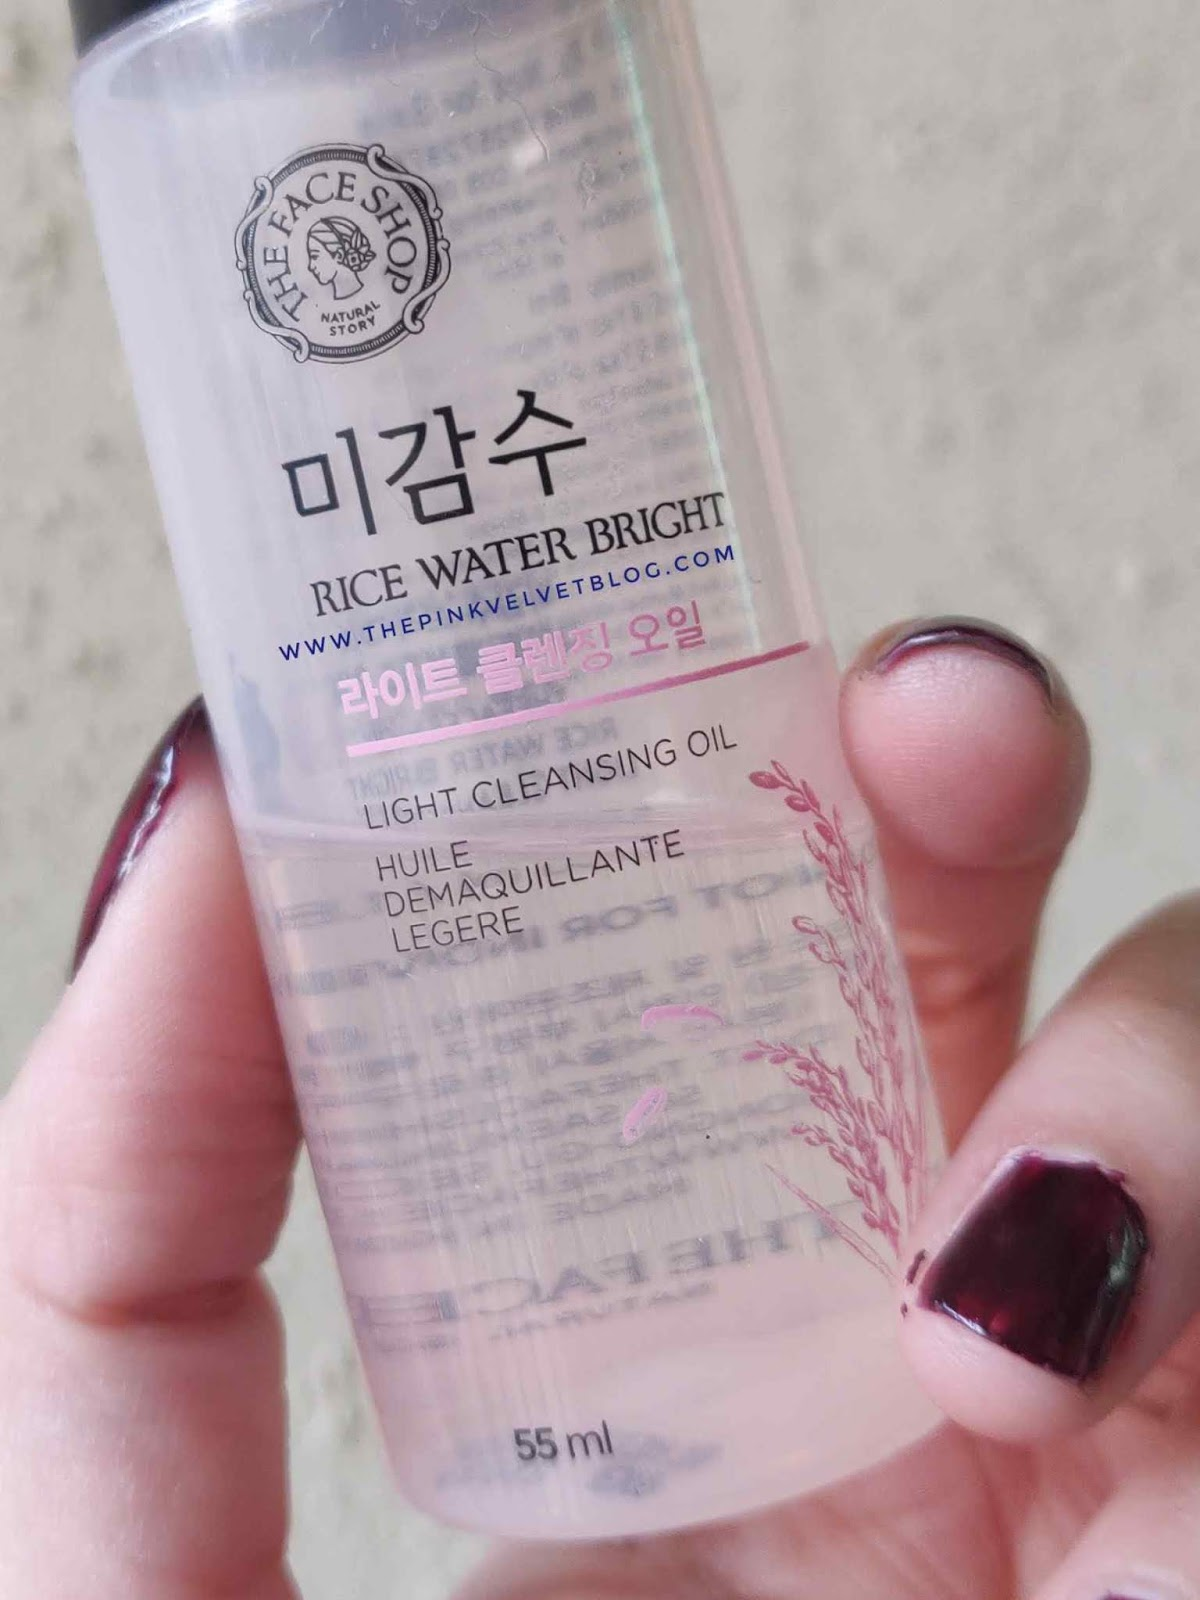 The Face Shop Rice Water Bright Light Cleansing Oil - Review